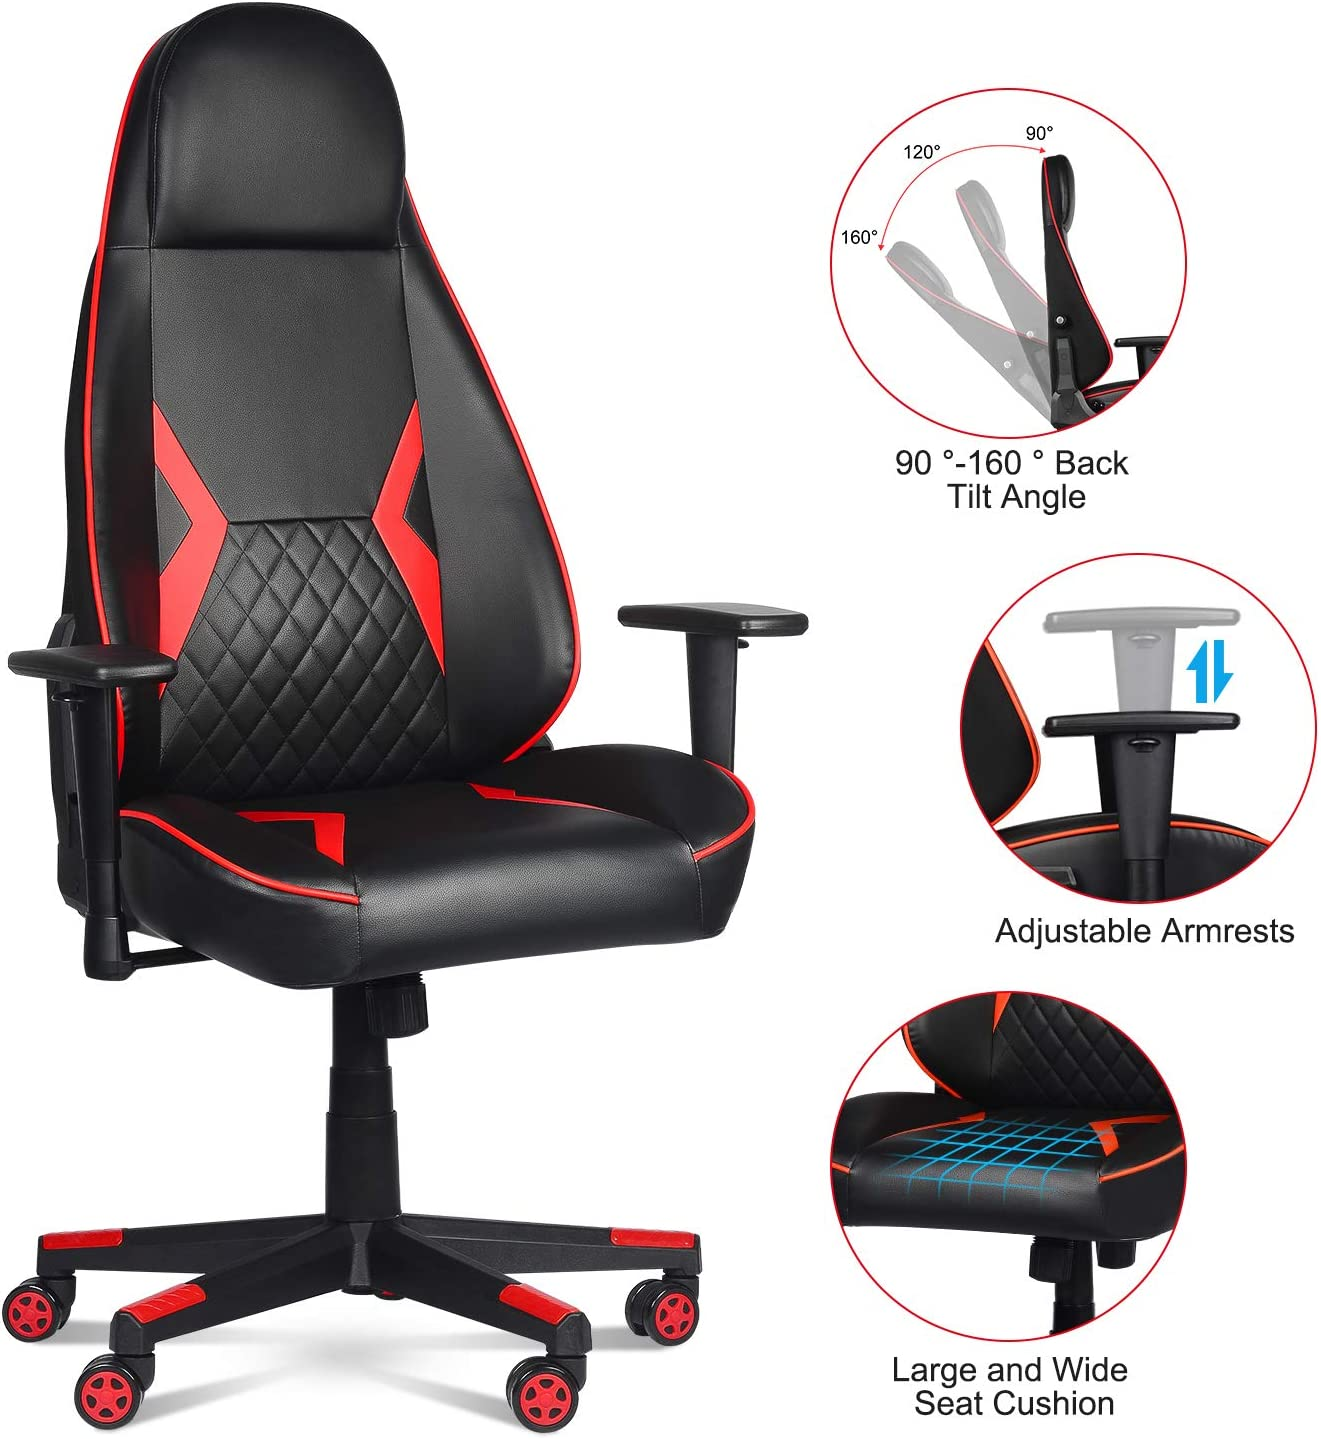 LENTIA Gaming Chair Adjustable Angle Reclining Computer Chair